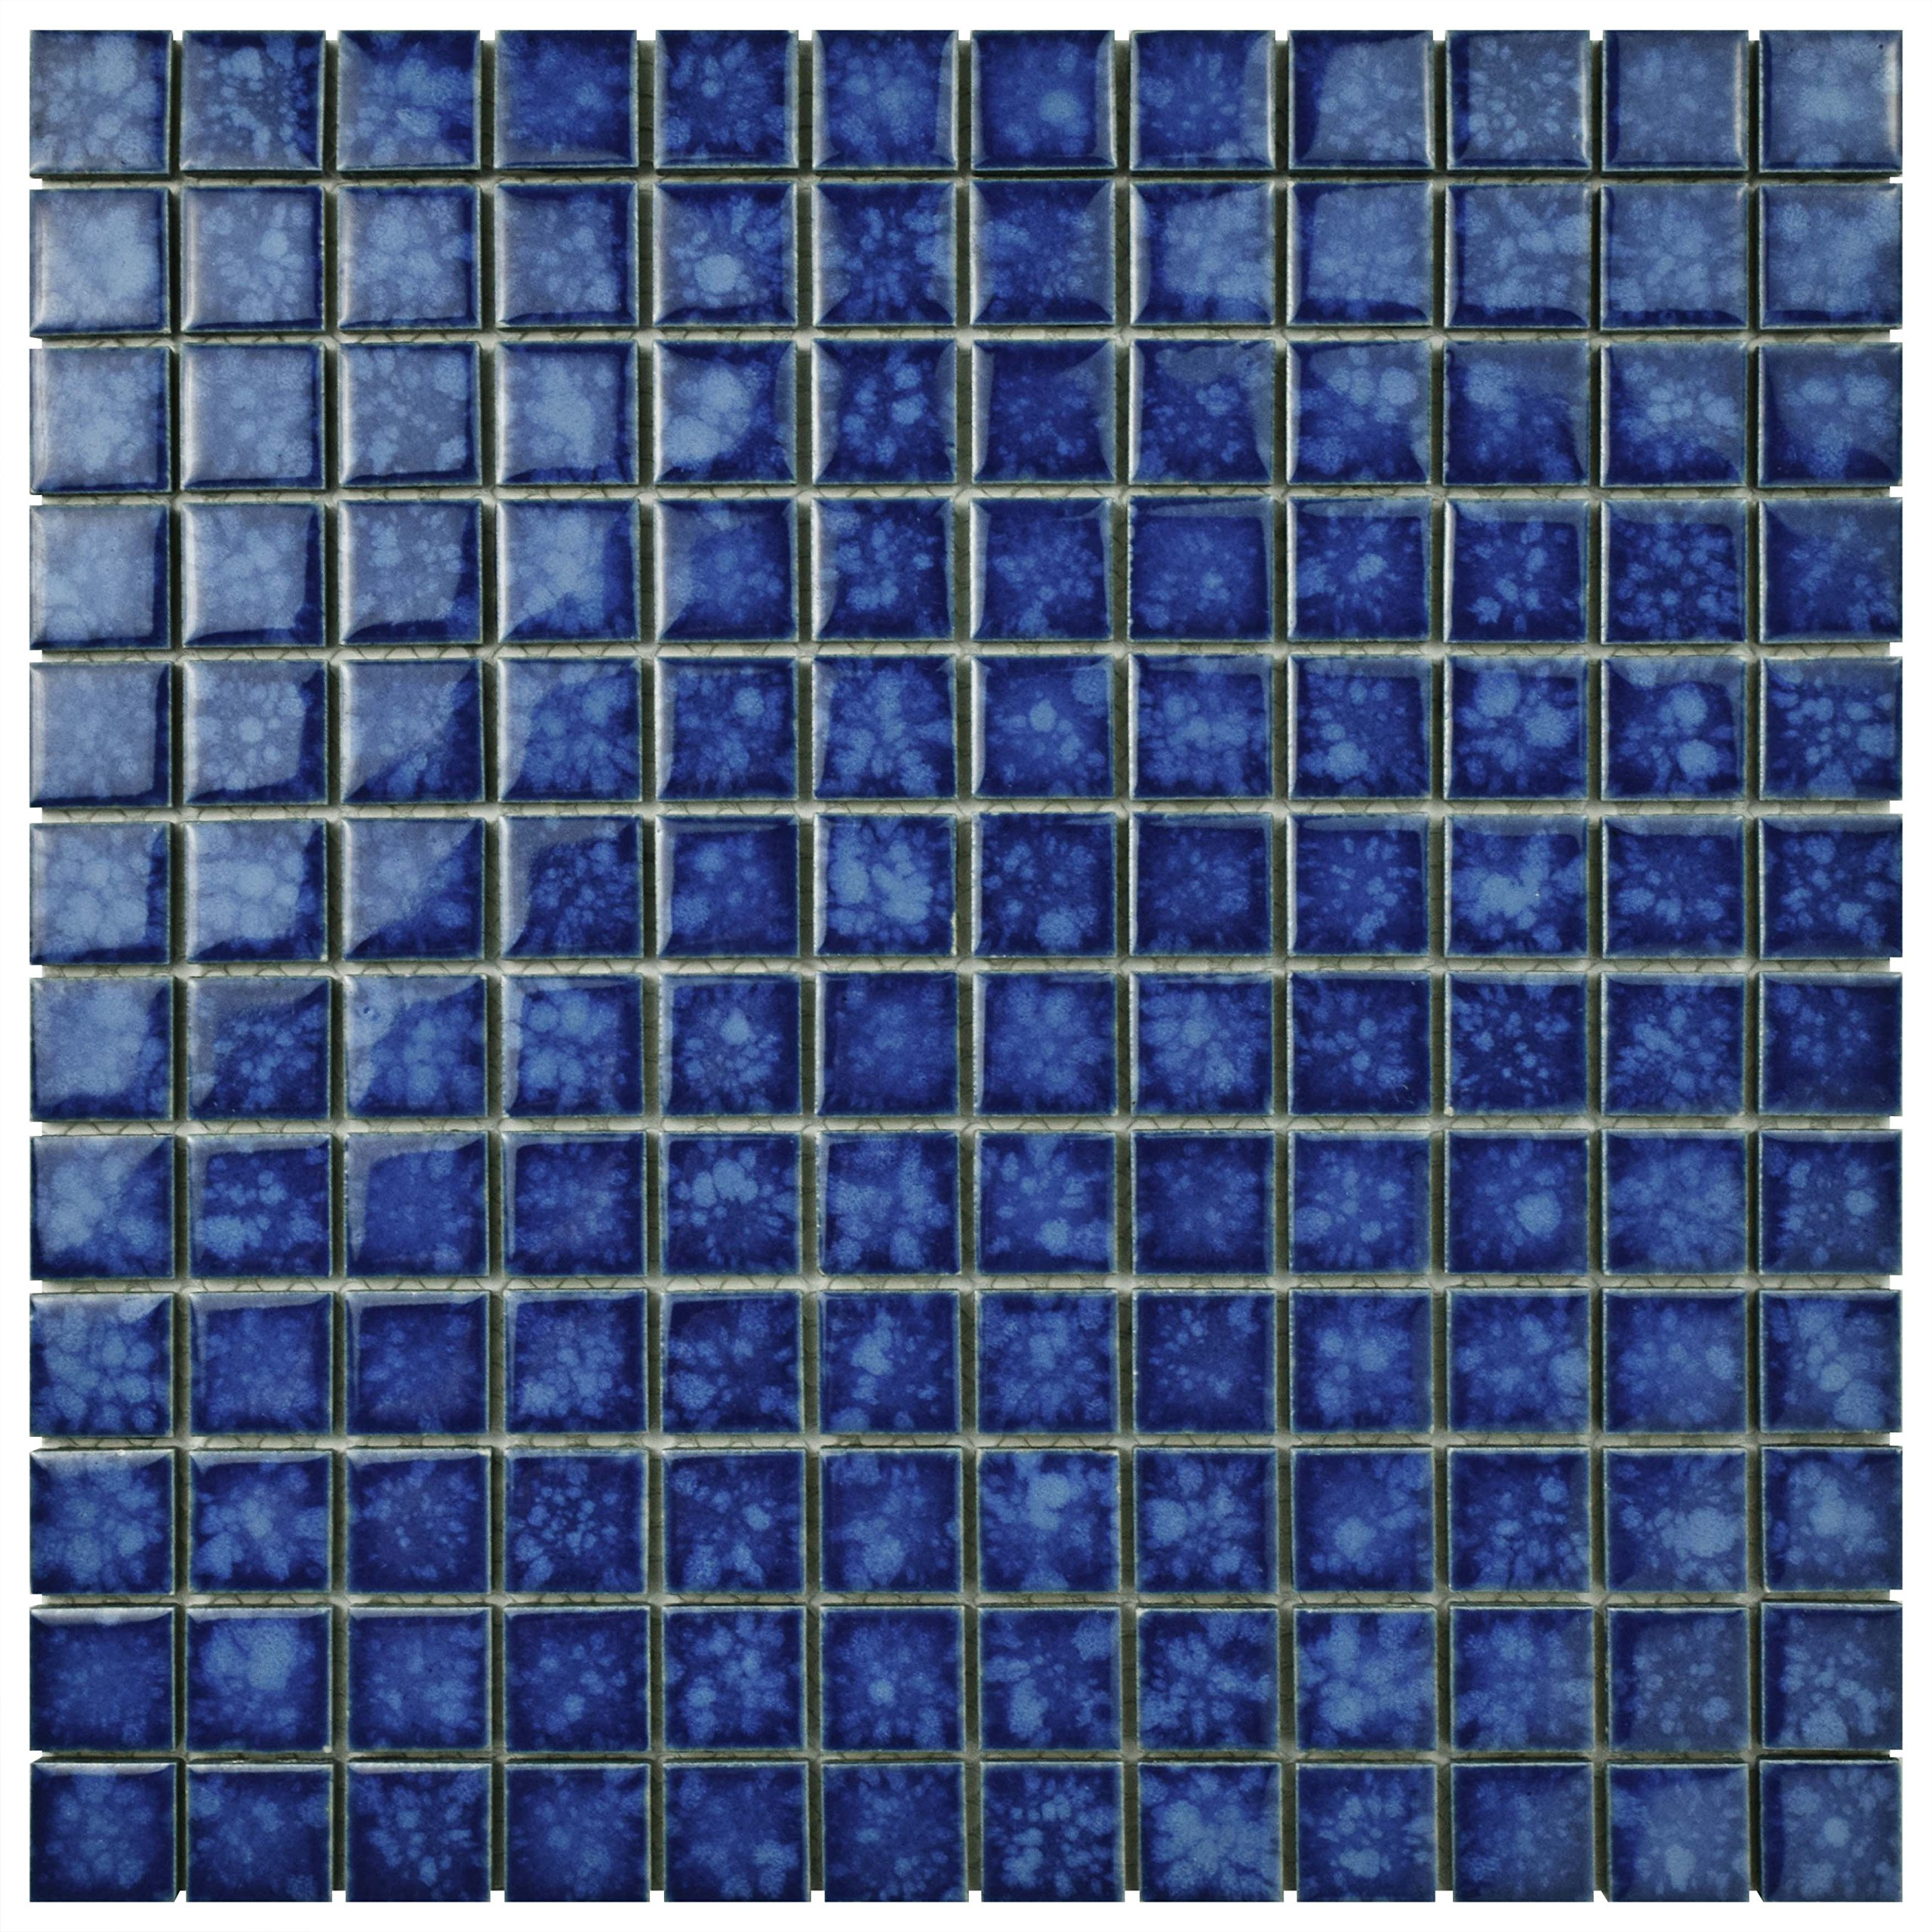 SomerTile FYFL1SPA Sea Square Pacific Porcelain Floor and Wall Tile, 11.75'' x 11.75'', Blue